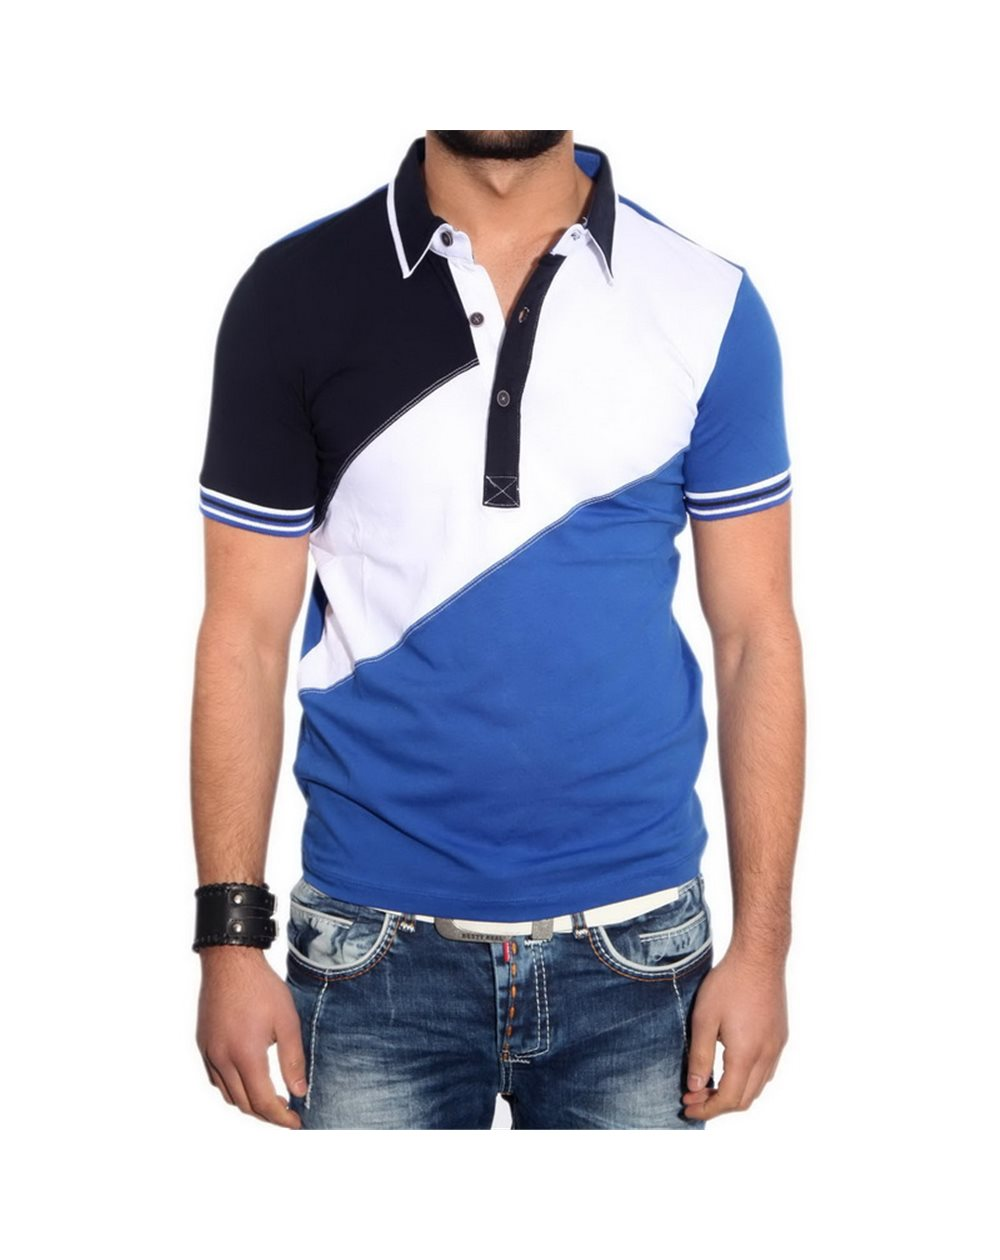 Subliminal Mode - Polo homme multicolore decontracter KD2504